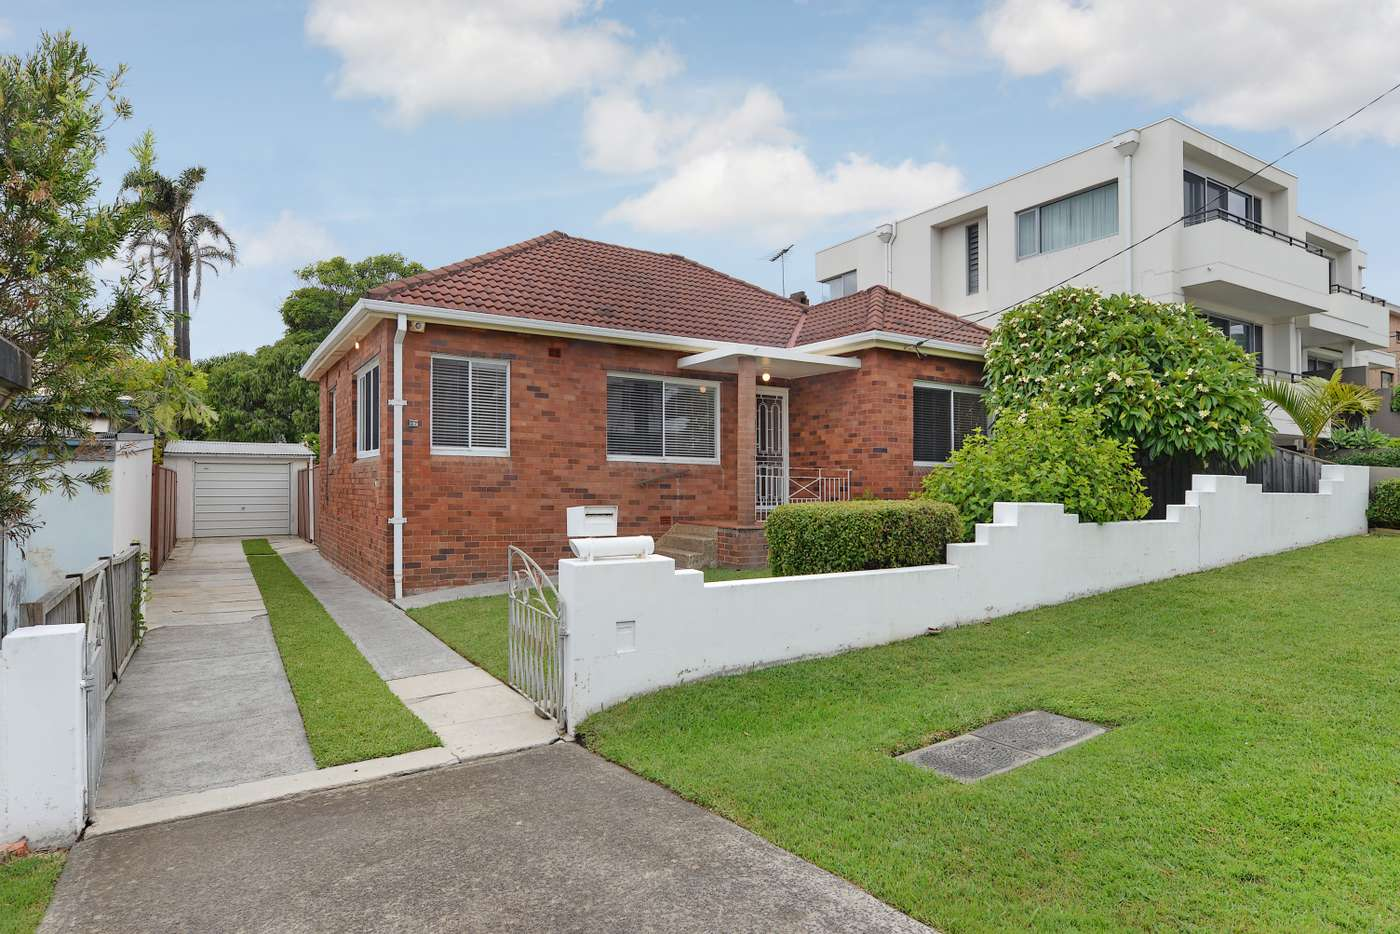 Main view of Homely house listing, 37 Napier Street, Malabar NSW 2036